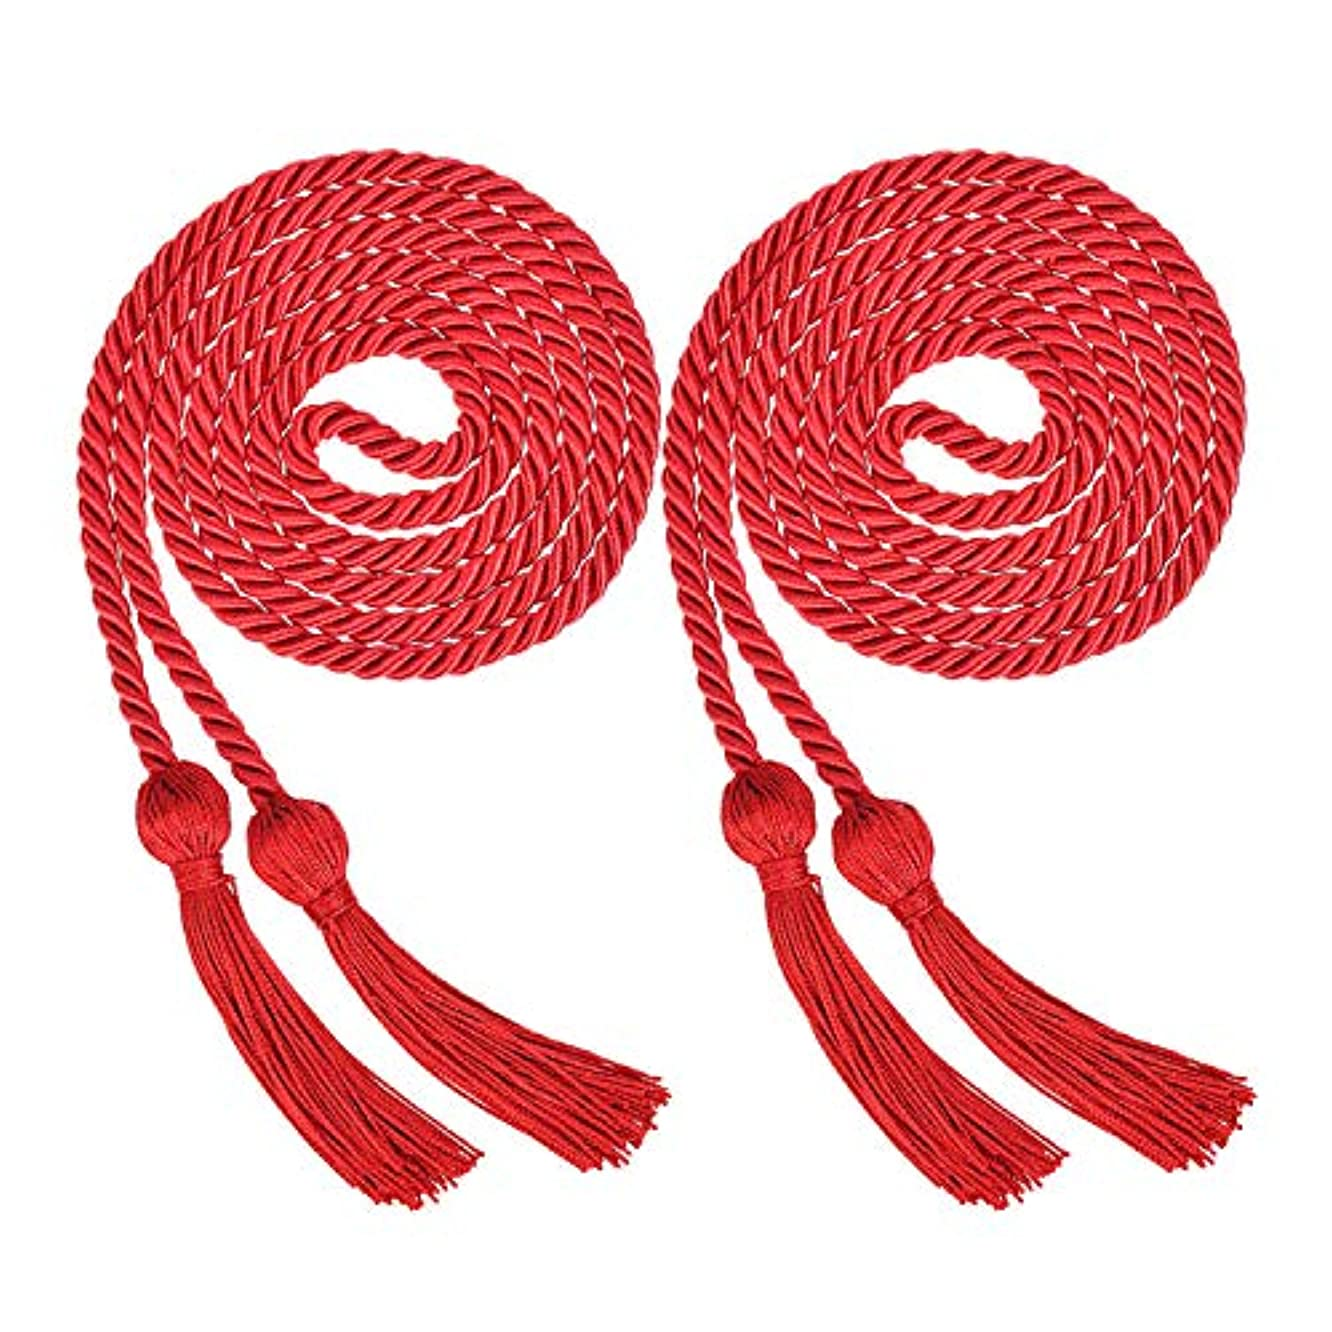 ECONIE Graduation Honor Cords Polyester Yarn Graduation Tassel Accessory for High School College Graduation Bachelor Gown (red)